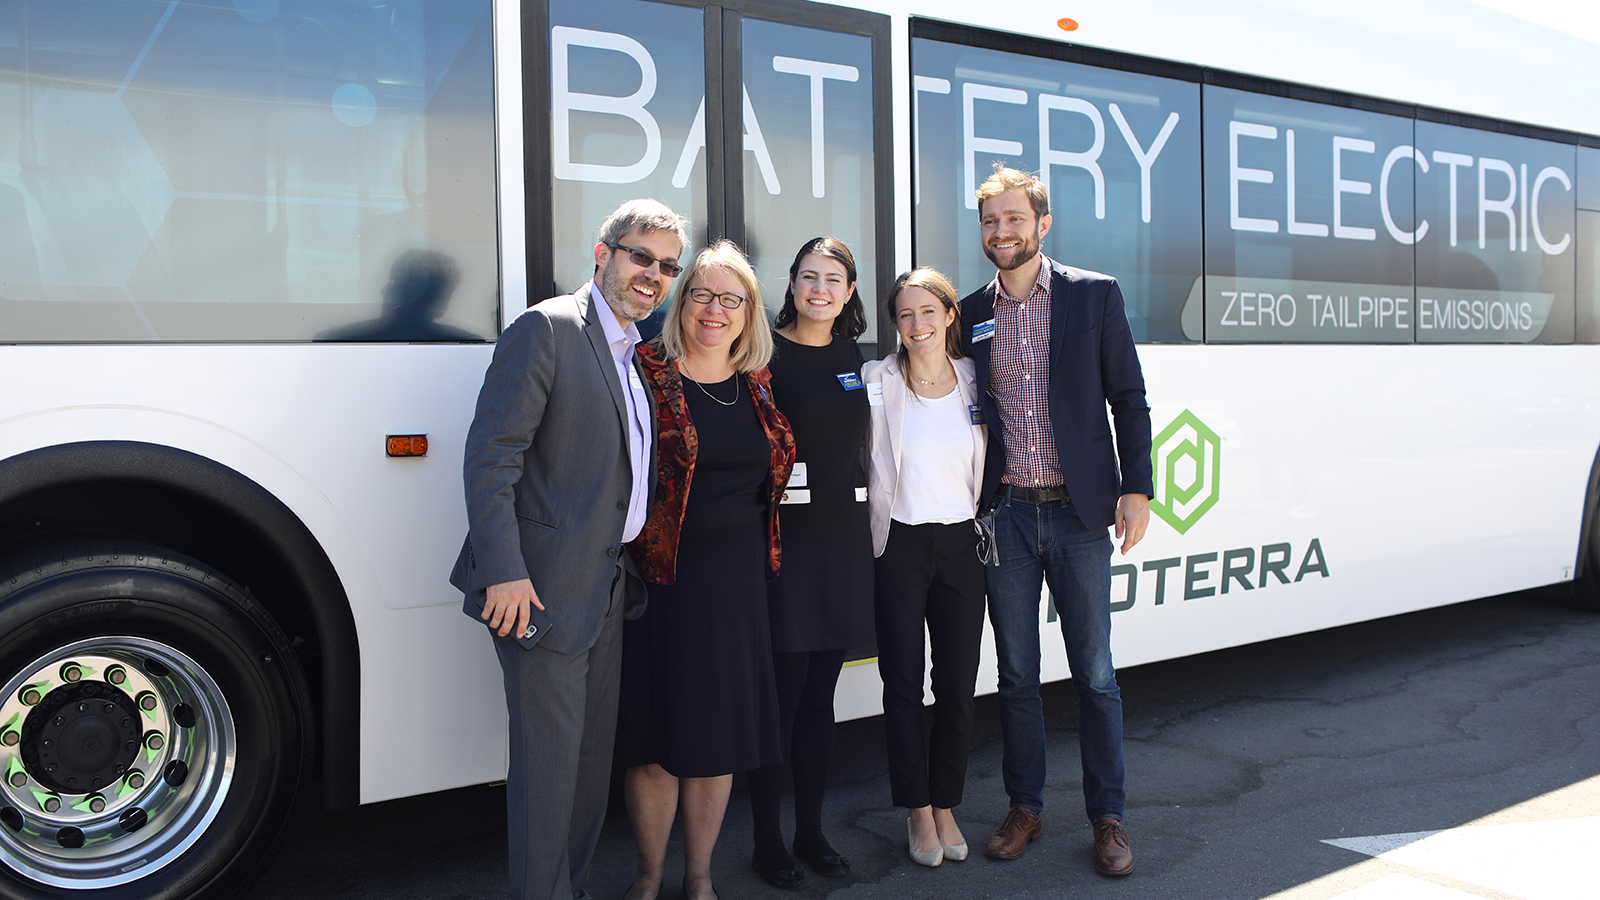 <h4>TO GET TO ZERO CARBON: ELECTRIFY BUSES</h4><h5>We're calling for all school and public transit buses to be electric by 2030.</h5><em>Erica Kawamoto Hsu</em>